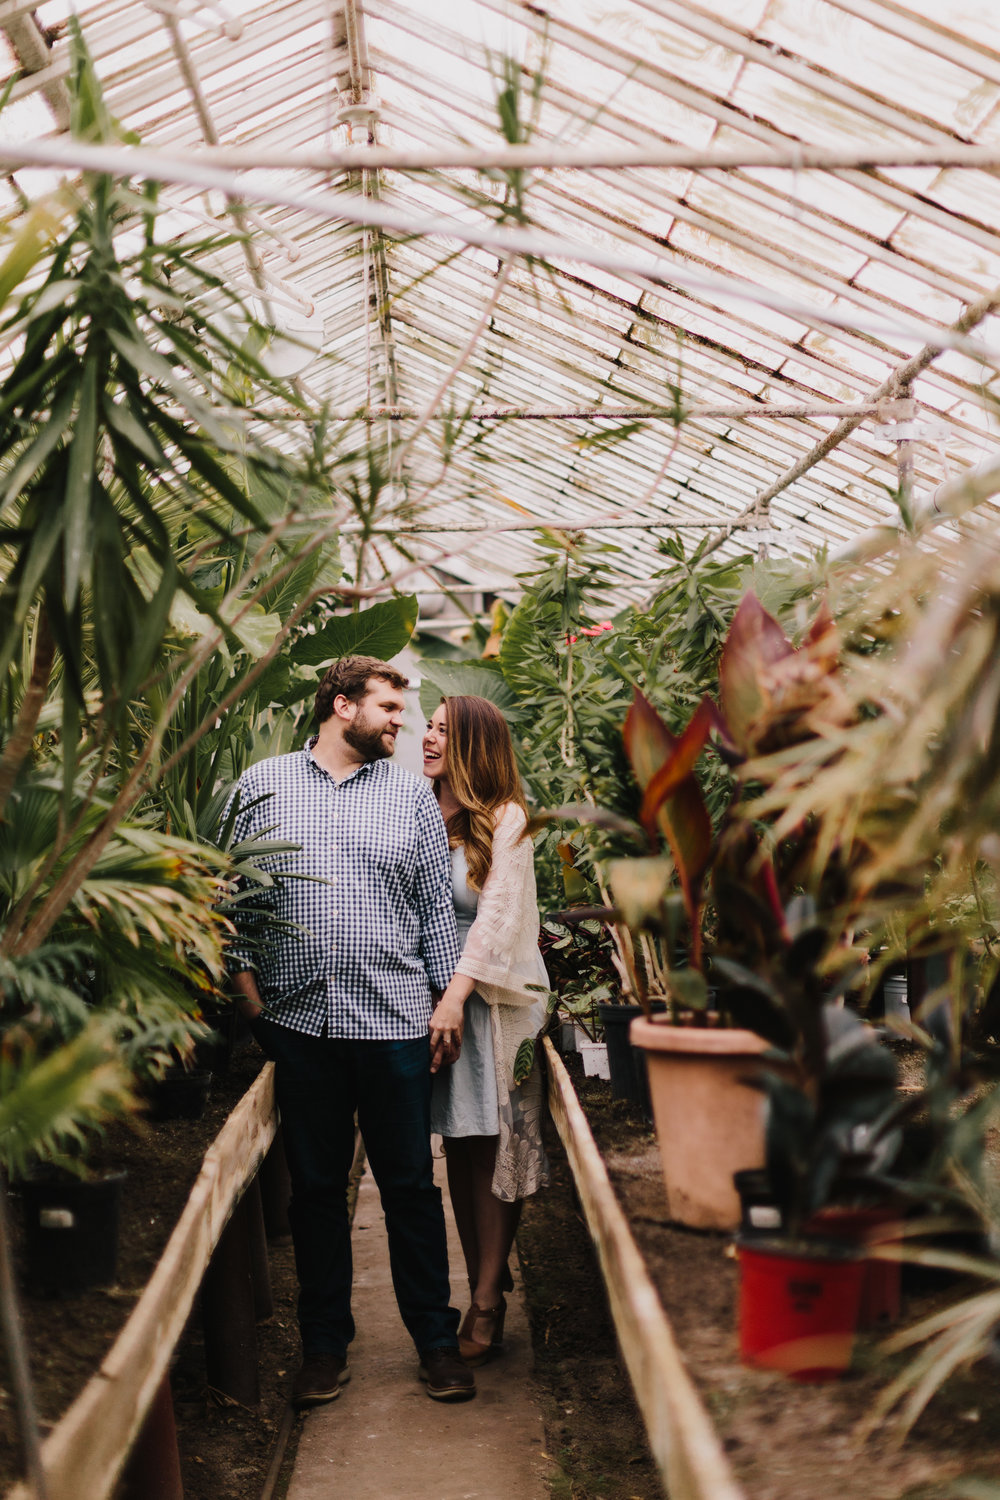 alyssa barletter photography greenhouse engagement photographer kansas city spring wedding-12.jpg